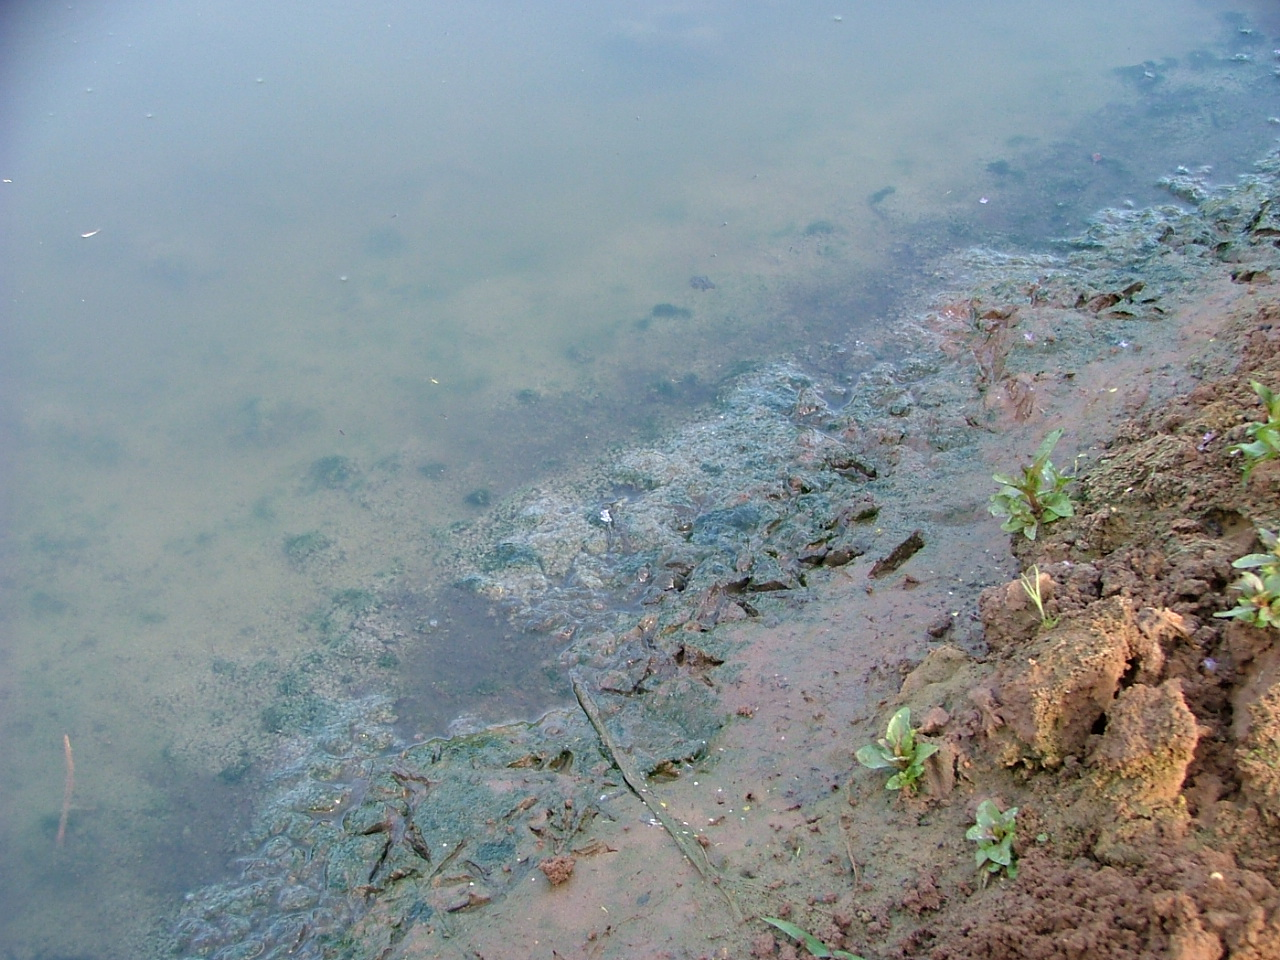 Murky, polluted water in the Kishon river near Haifa.